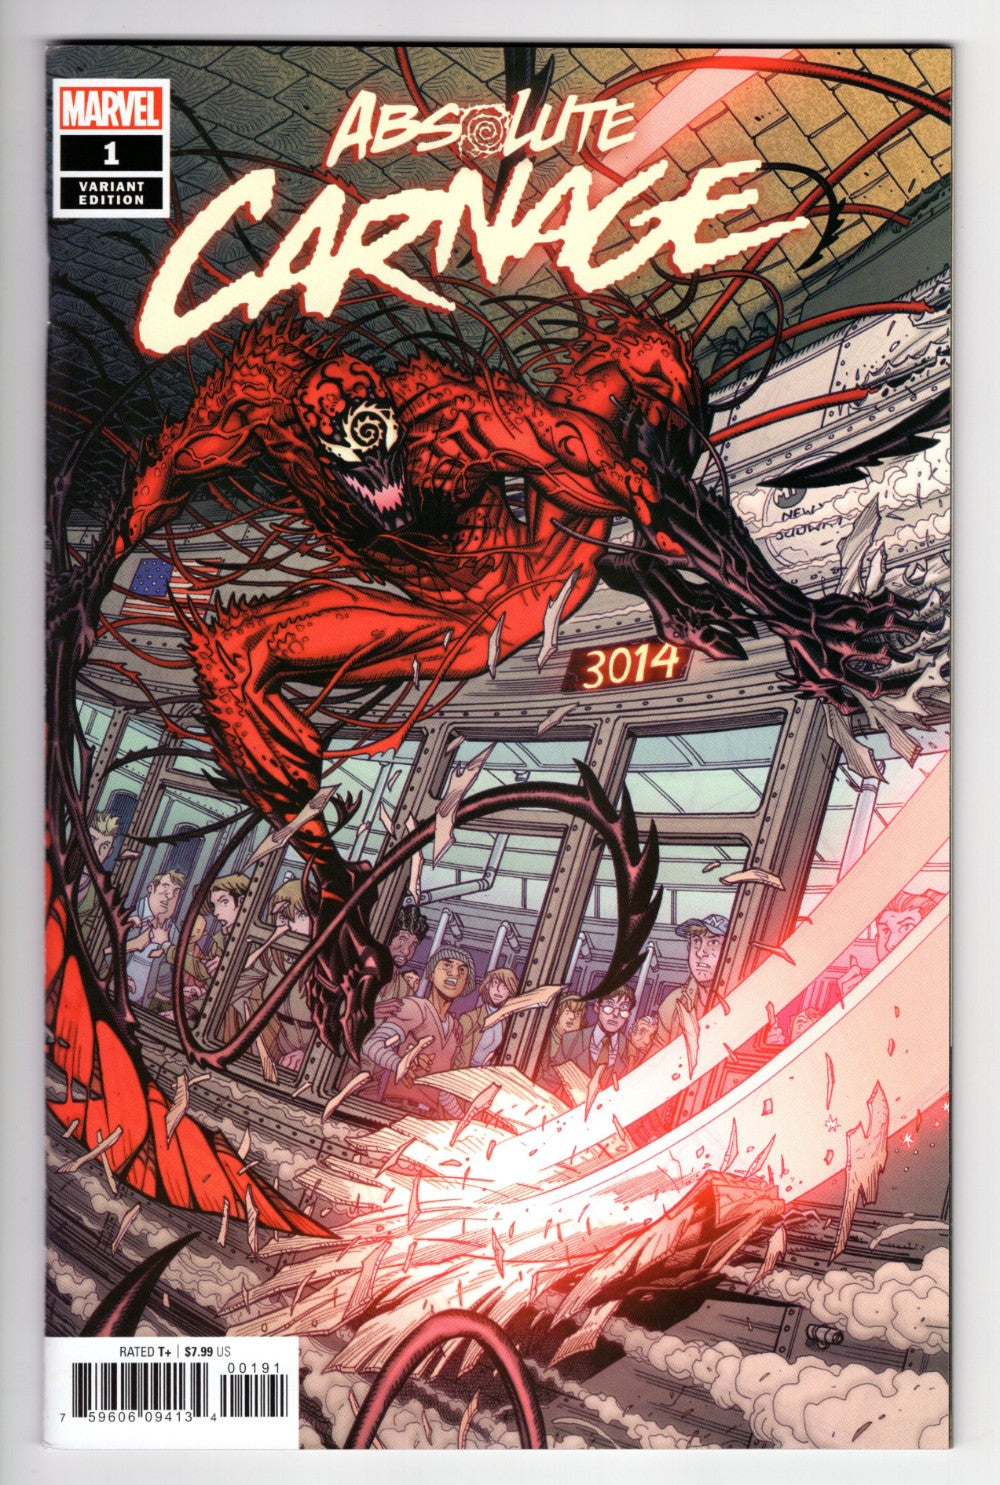 ABSOLUTE CARNAGE #1 1 in 50 BRADSHAW VARIANT